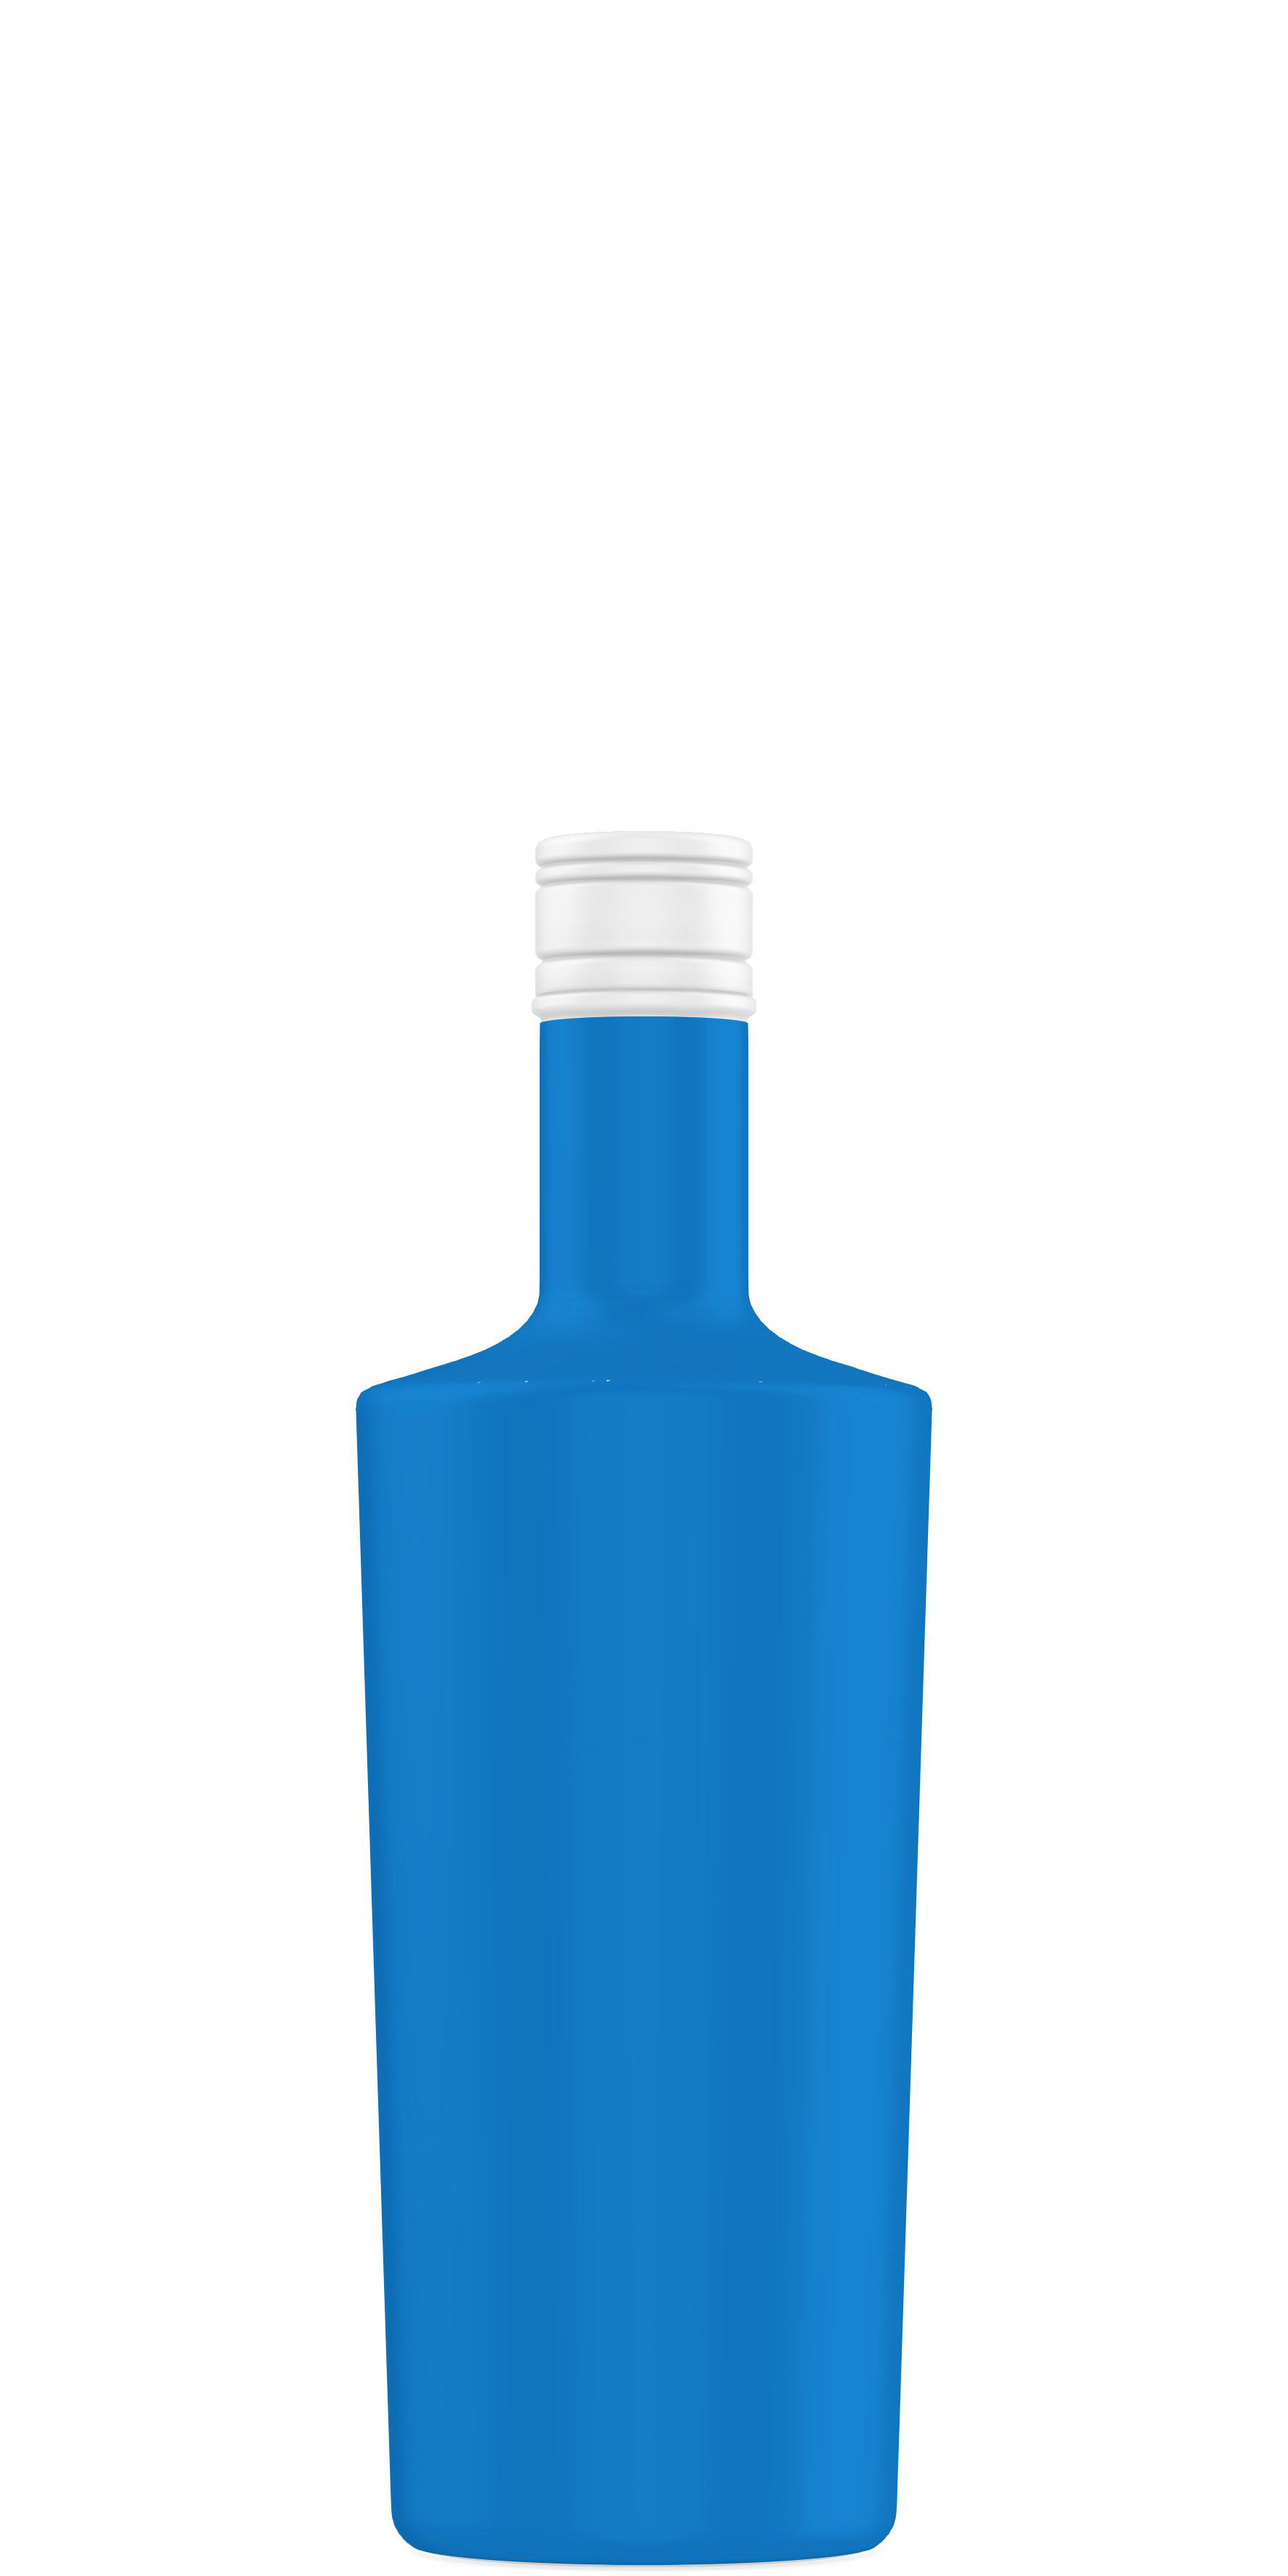 Packaging shape of rhum 70cl to 75cl